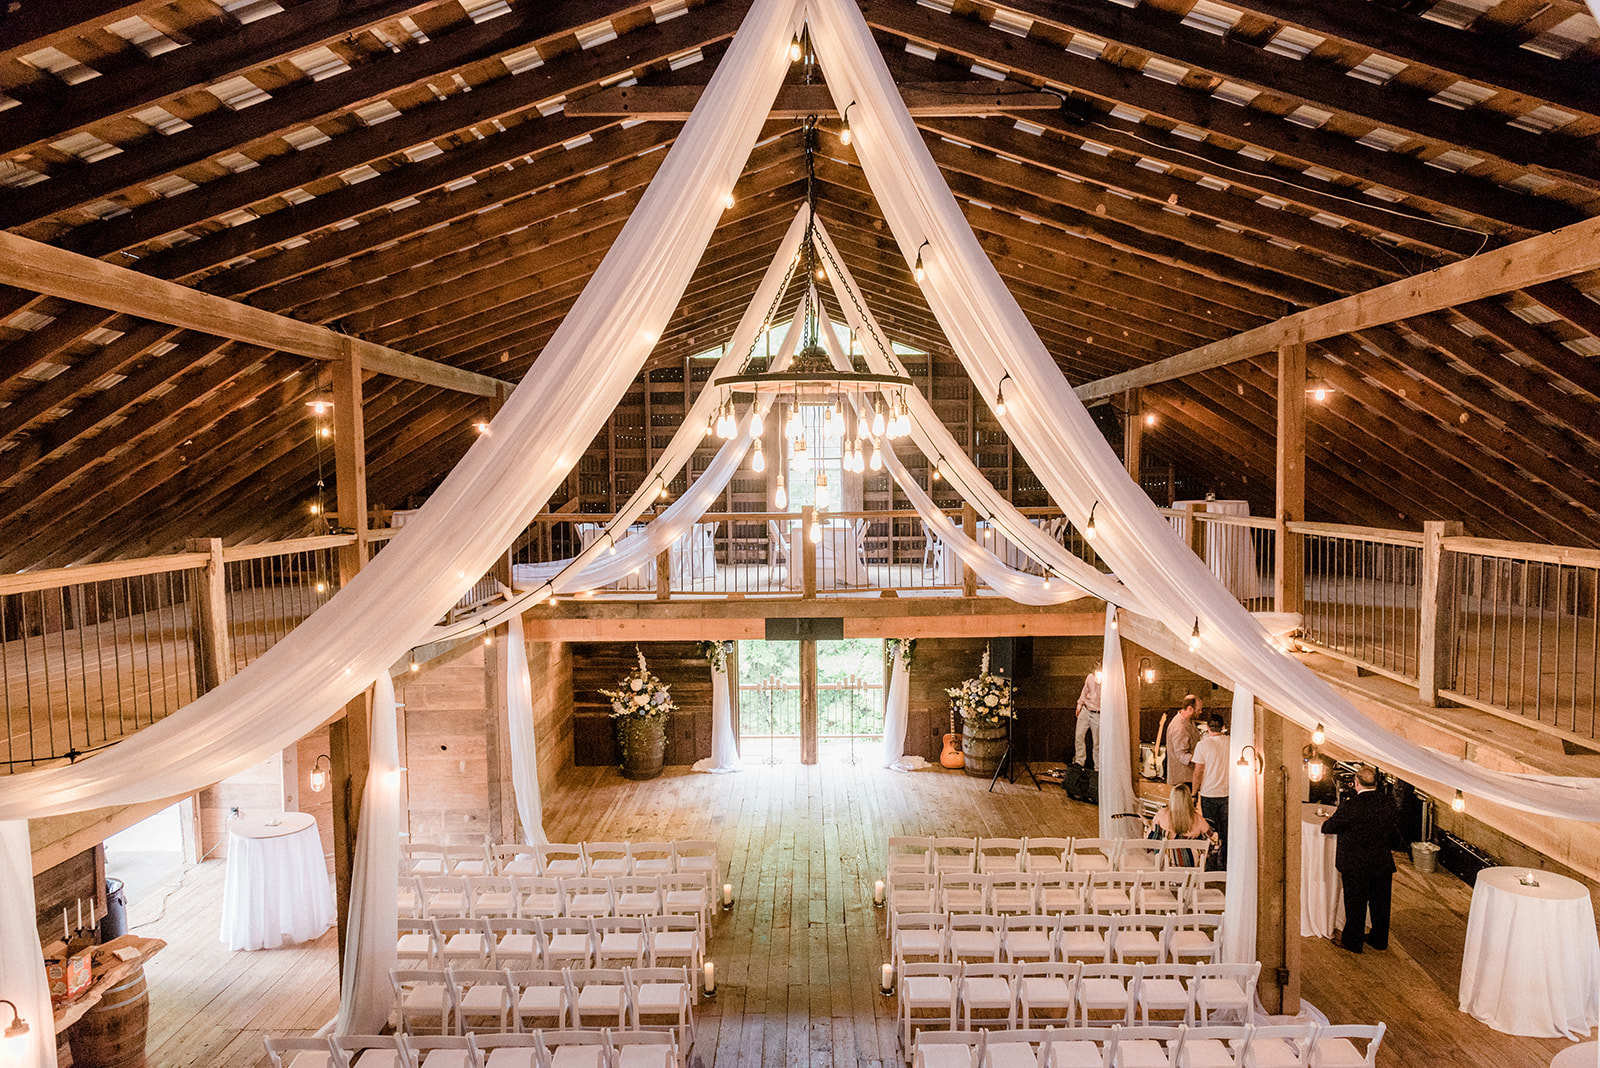 Katy & Mark | The Barn at Bennett Flats